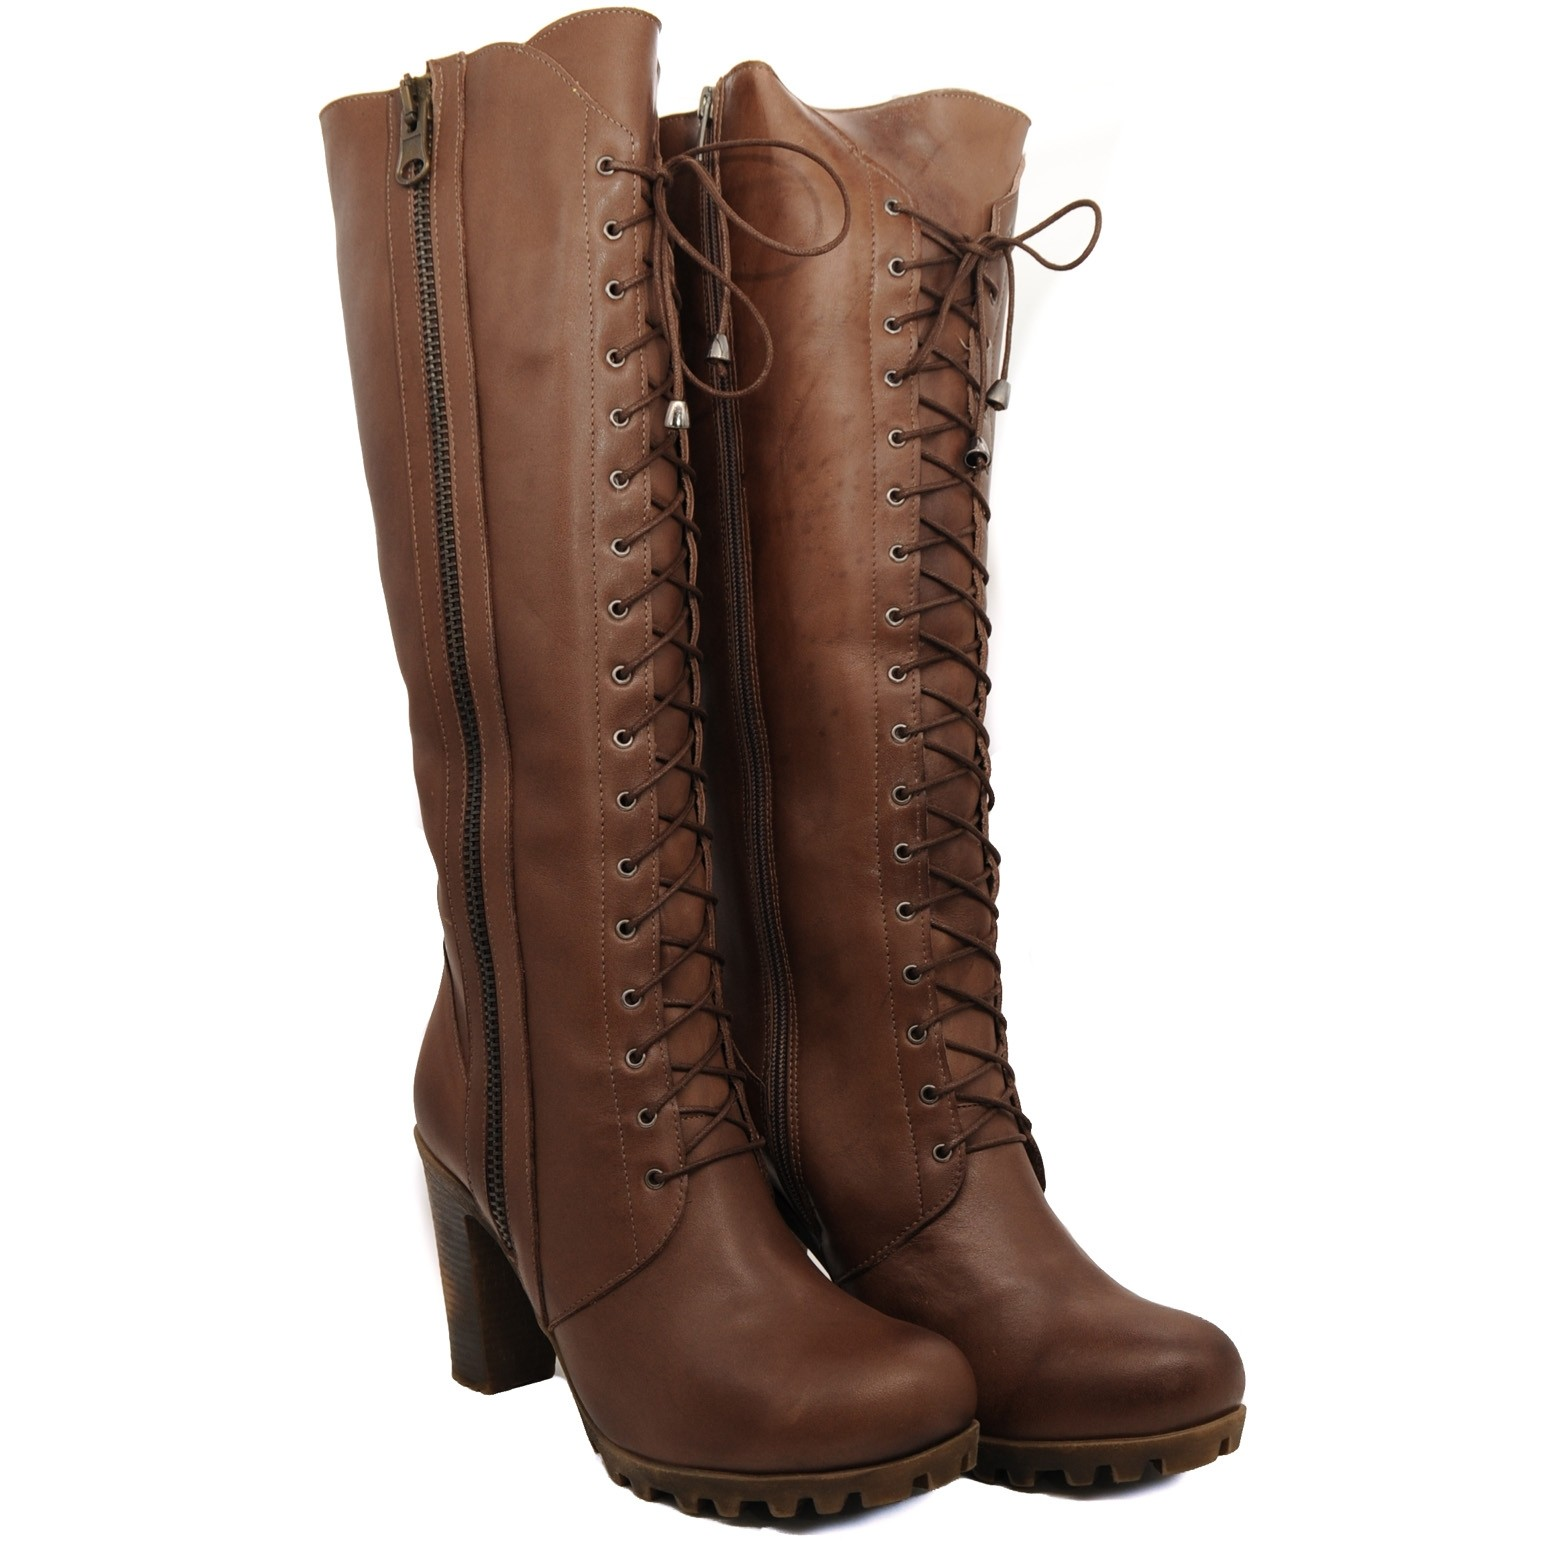 Pegia Ladies Knee High Leather Boots Brown 17 Hole Laced Up Attractive Boot with a Medium Heel and a Full Length Zip